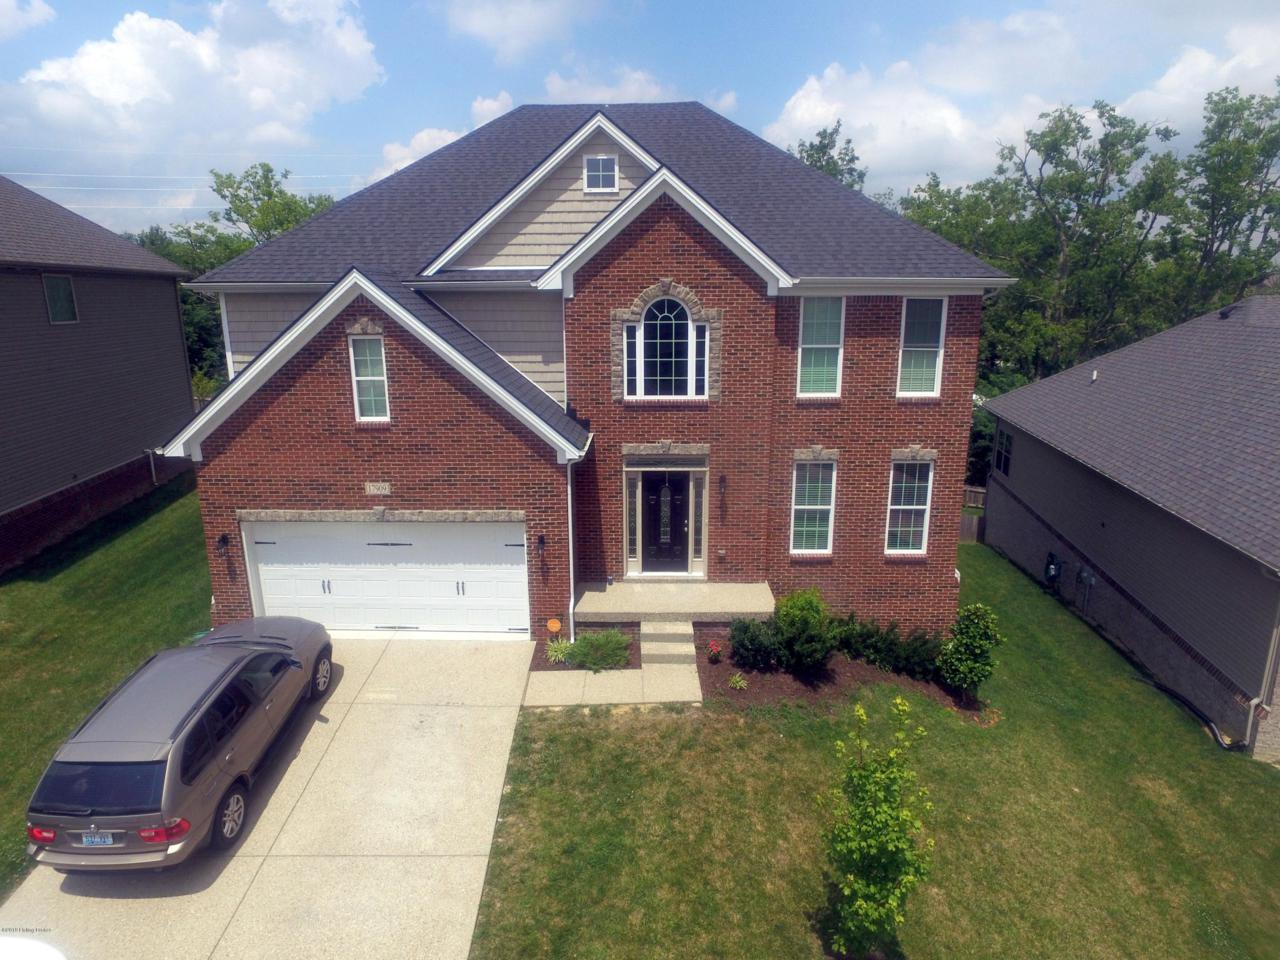 17909 Duckleigh Ct - Photo 1